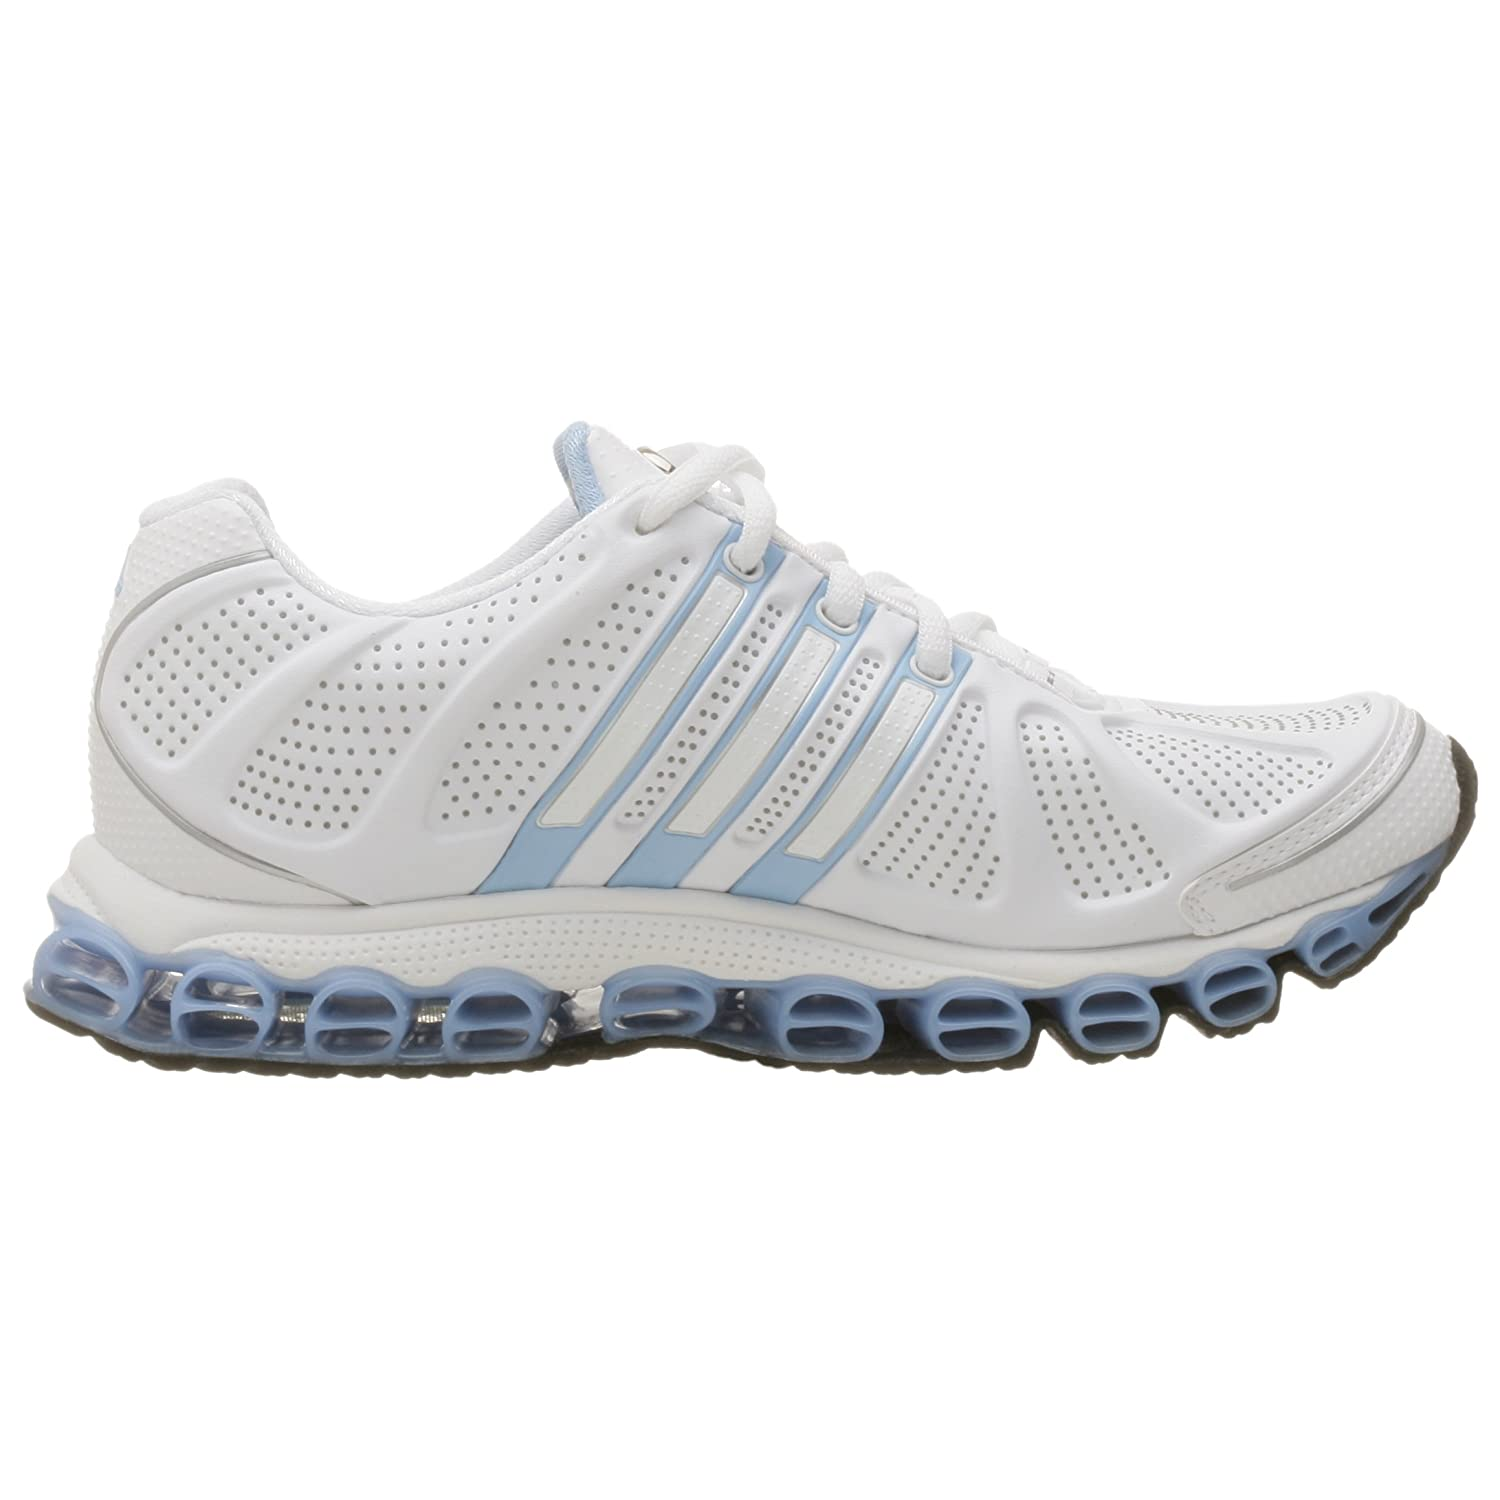 97db101a9eb5f Adidas Women's a3 Microride Synthetic Running Shoe, White/Lt Sky, 6 ...